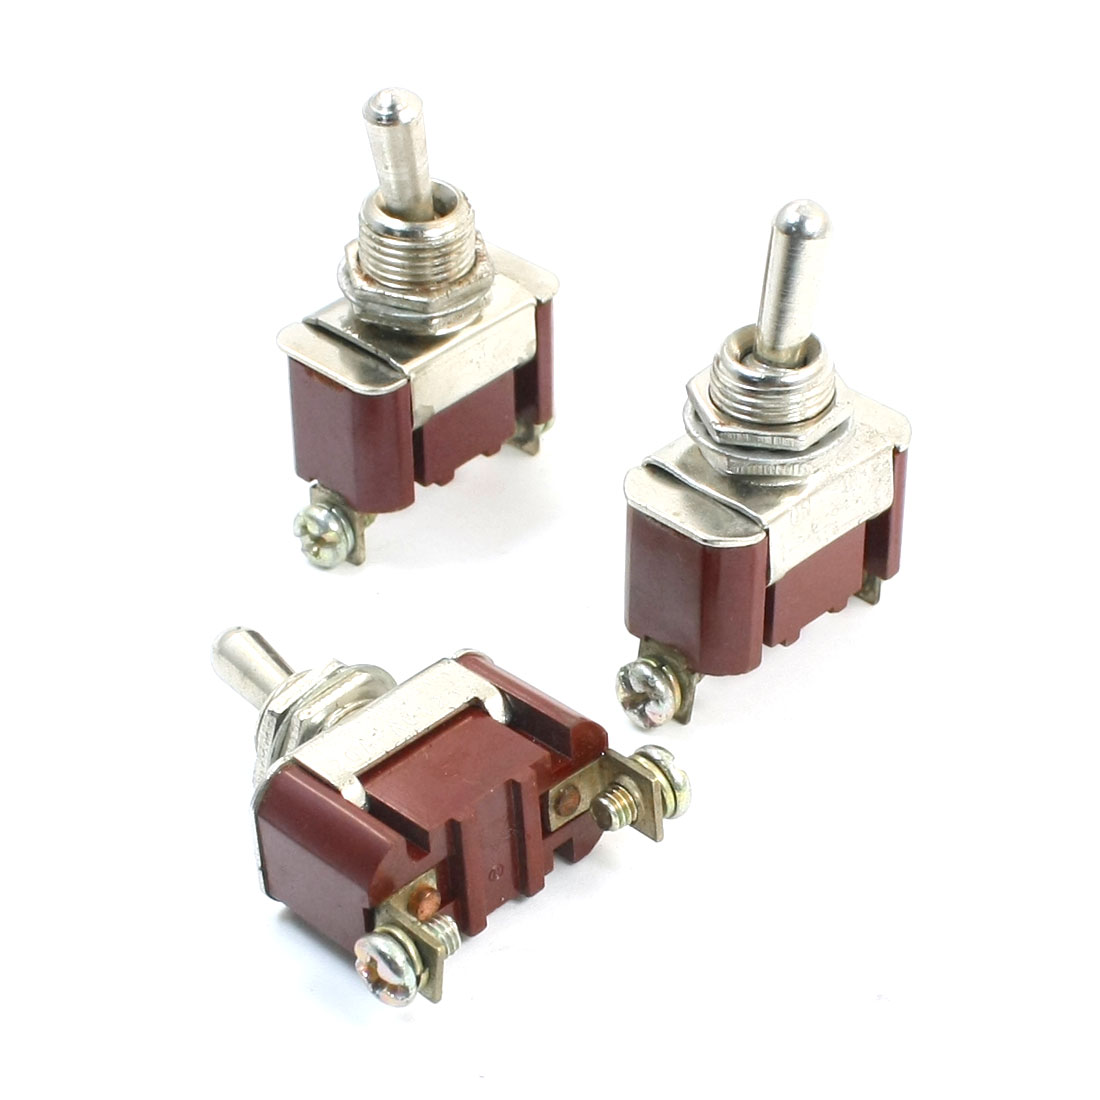 3 Pcs Panel Mount SPST Replacing 2 Position Toggle Switch for Keyang 100 Angle Grinder